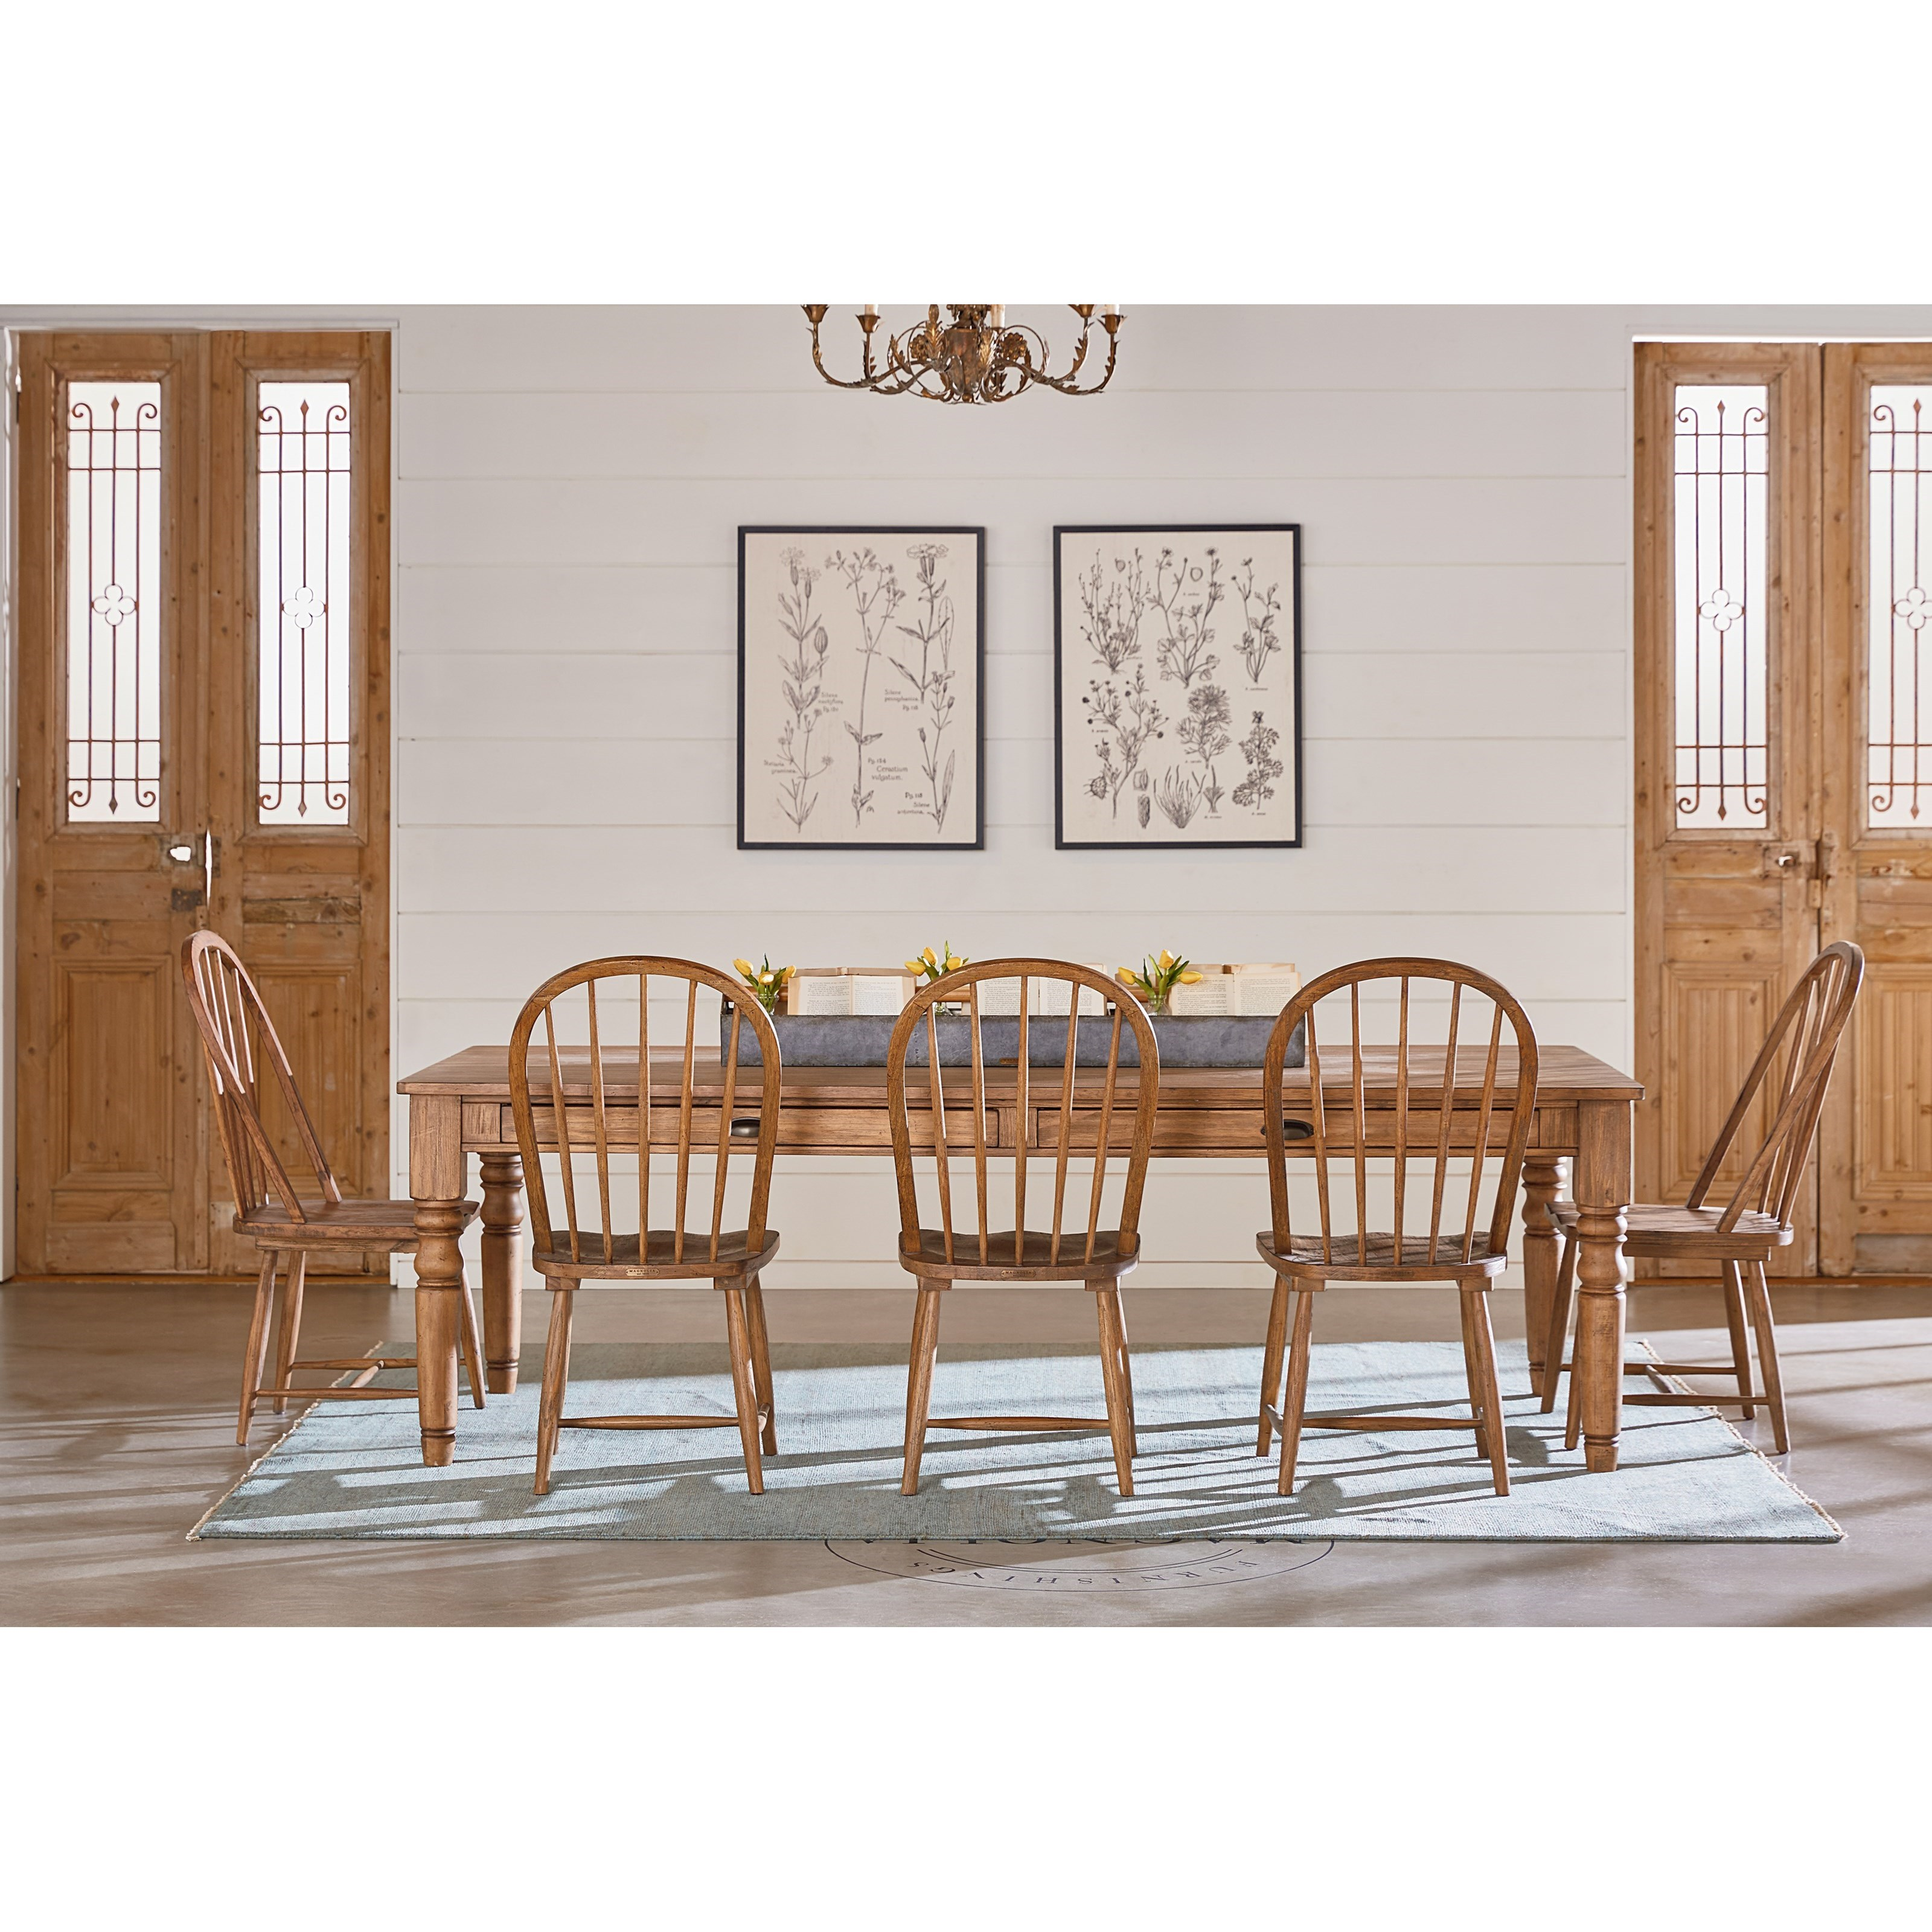 7 foot taper turned dining table by magnolia home by for Magnolia dining table